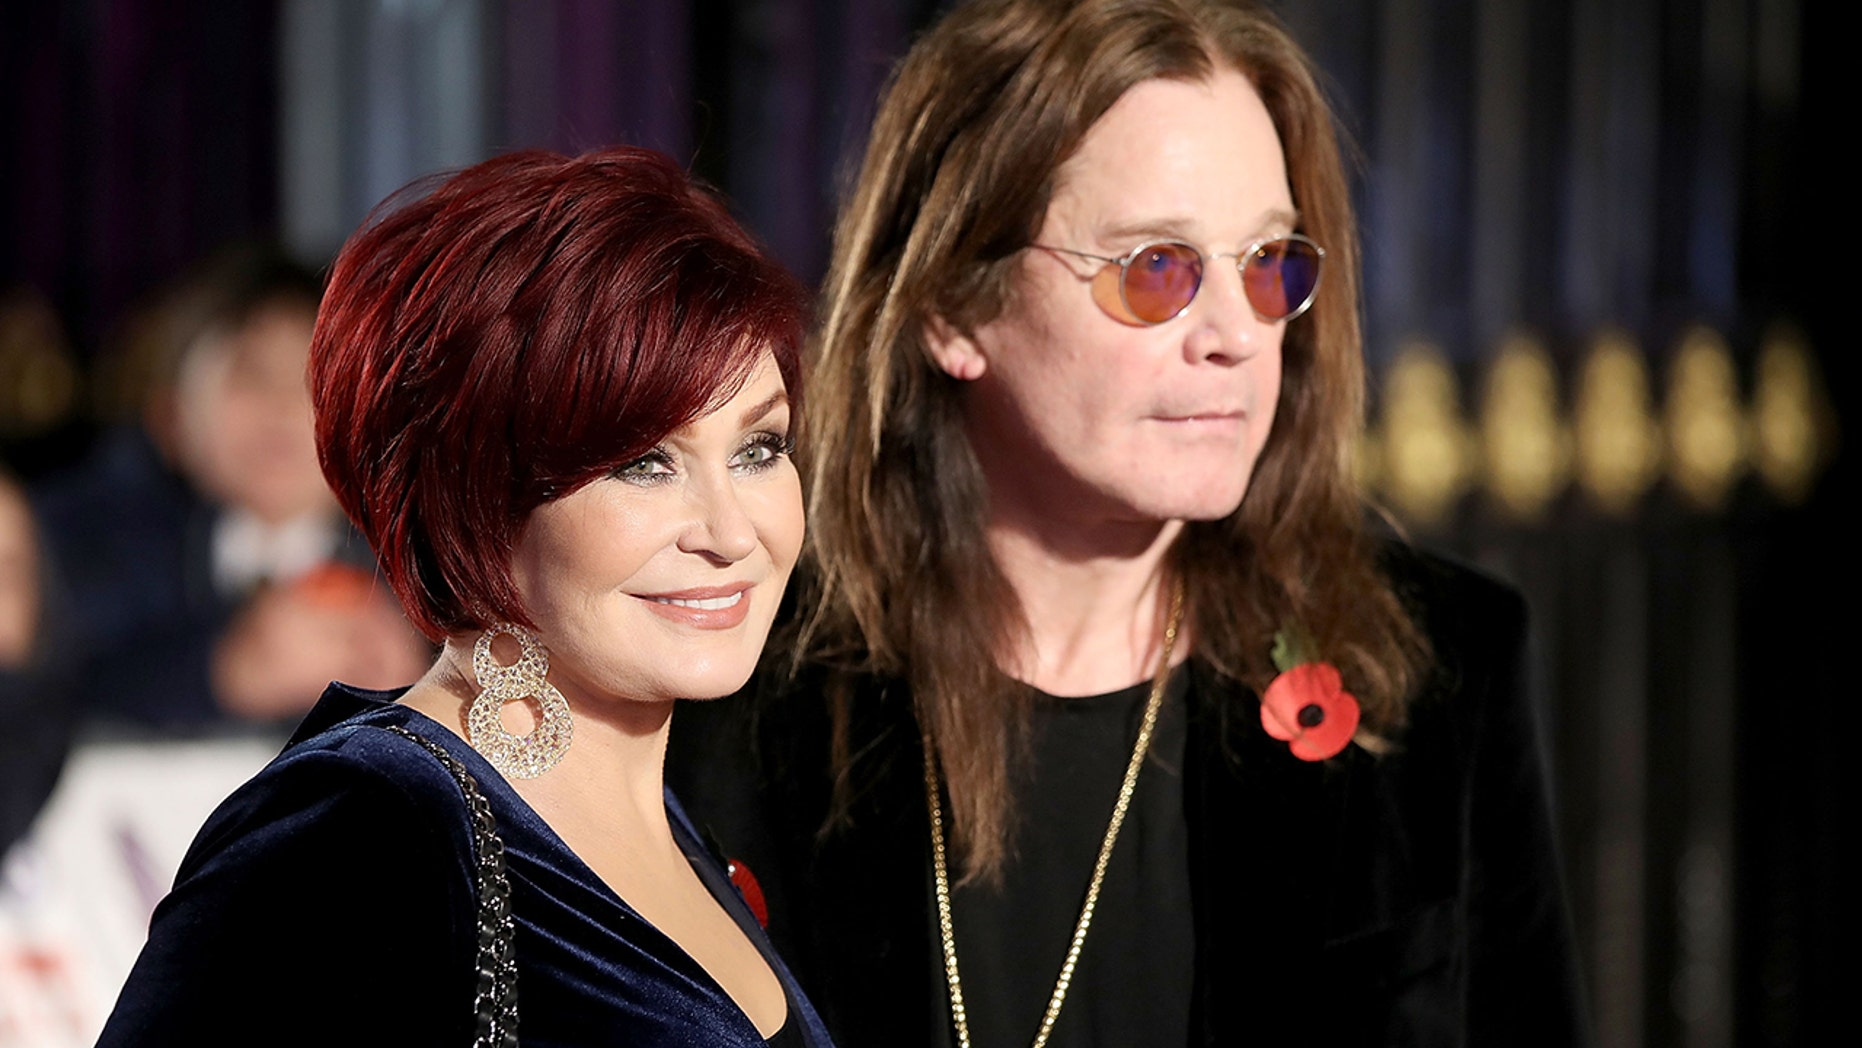 LONDON, ENGLAND - OCTOBER 30:  Ozzy and Sharon Osbourne attend the Pride Of Britain Awards at Grosvenor House, on October 30, 2017 in London, England.  (Photo by Mike Marsland/Mike Marsland/WireImage)